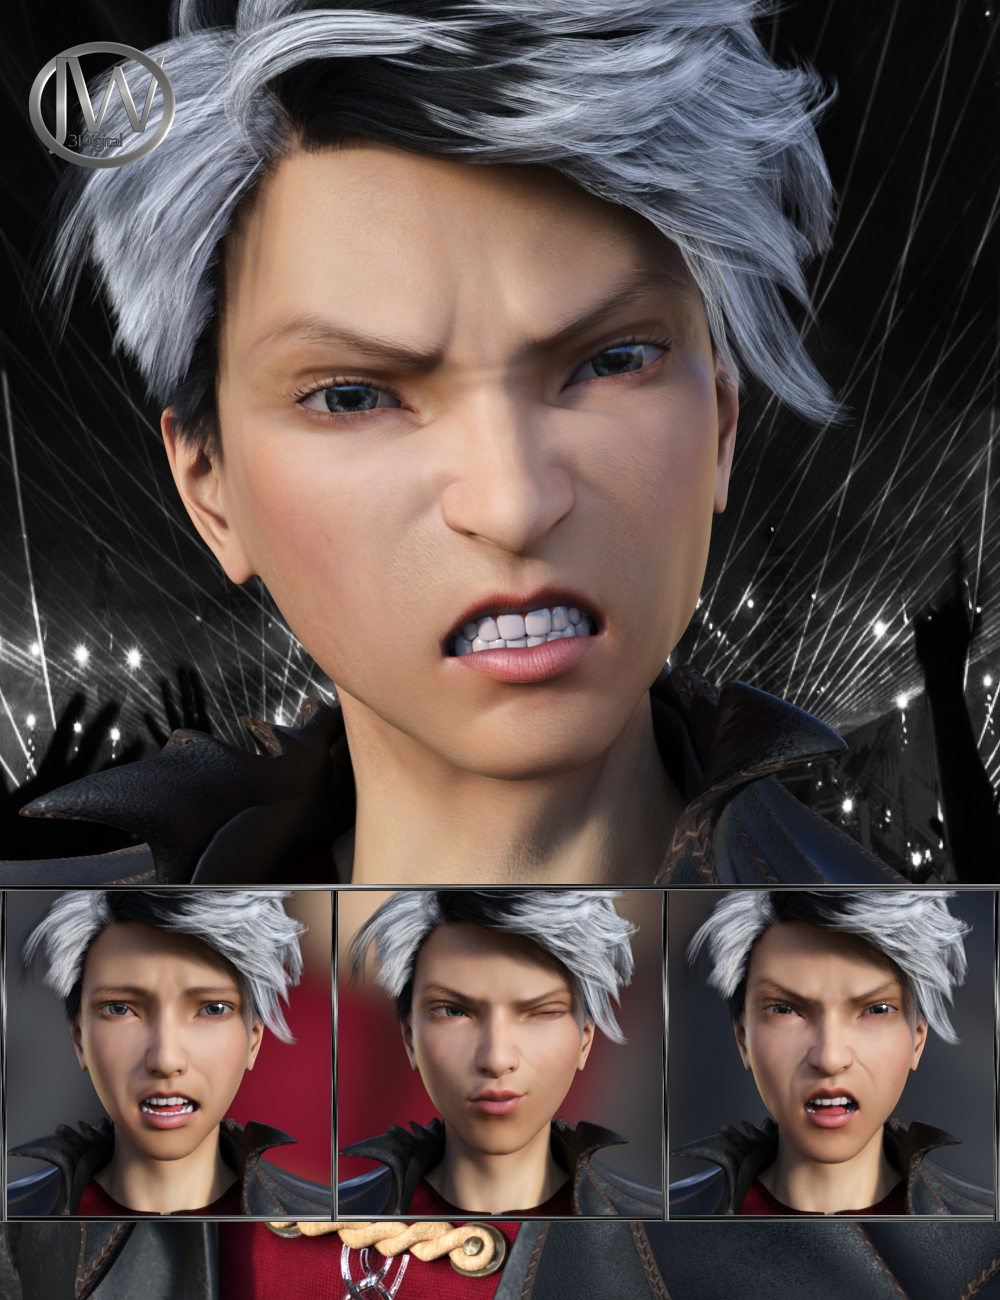 Pop Style - Expressions for Genesis 8 Male and Yuzuru 8 by: JWolf, 3D Models by Daz 3D